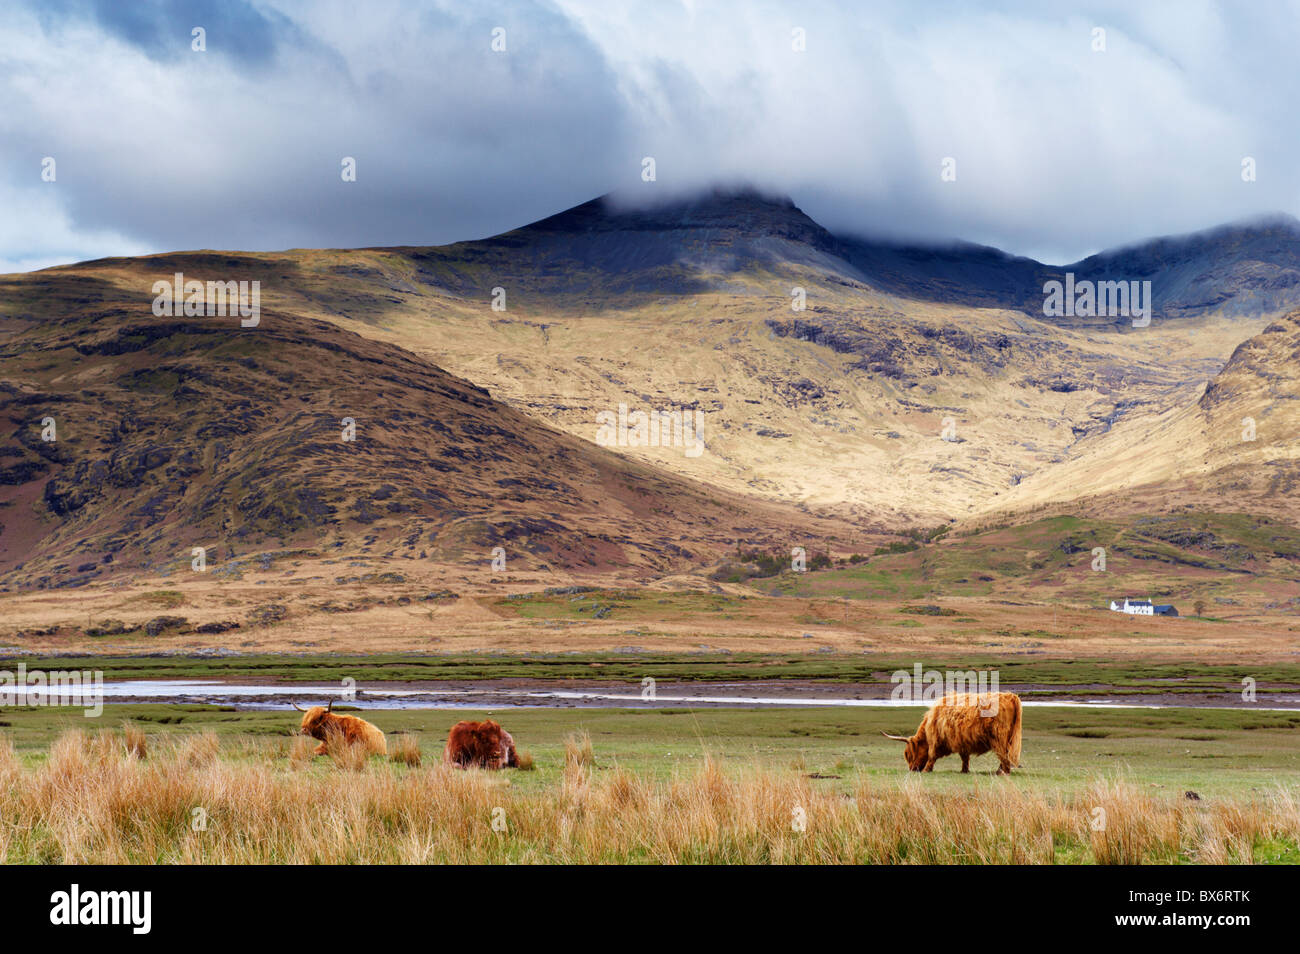 Highland cattle, Ben More in the distance, Isle of Mull, Scotland, United Kingdom, Europe - Stock Image